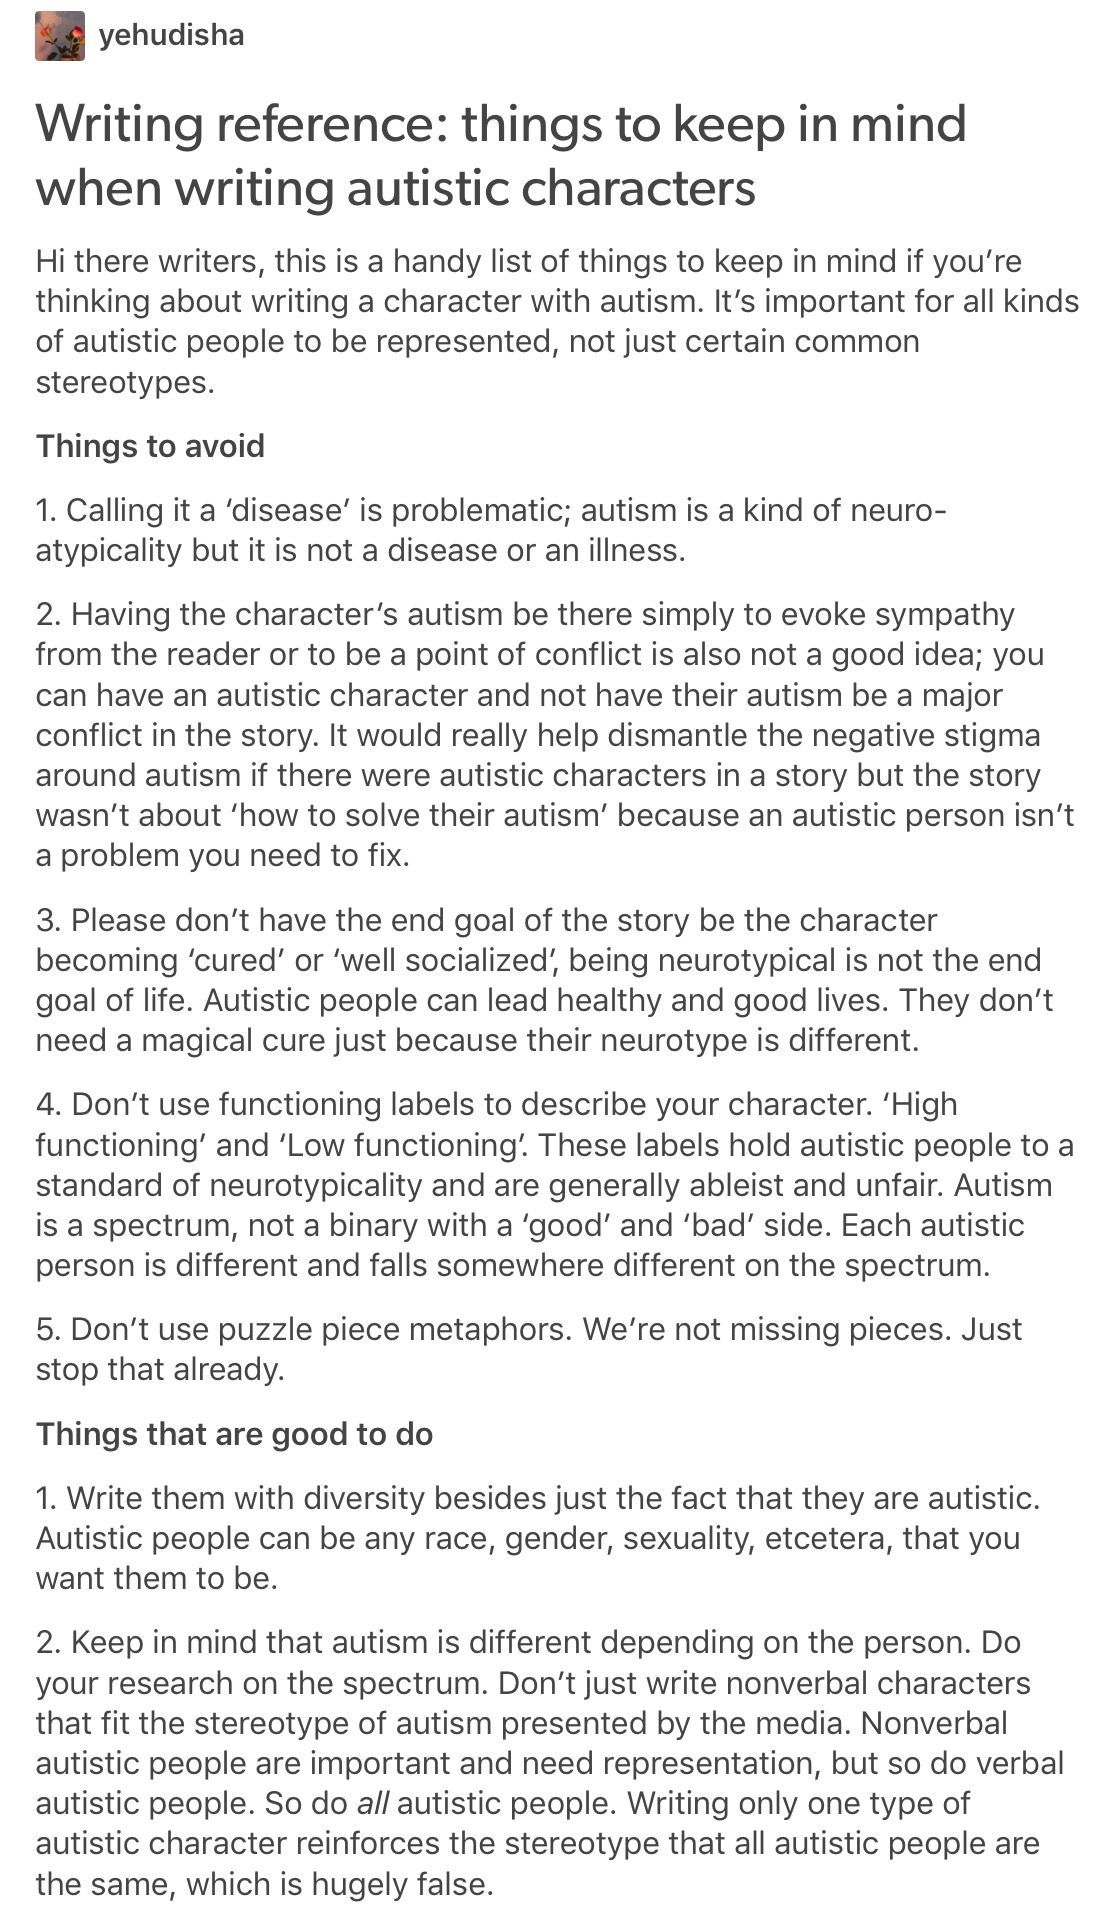 important to remember an autistic character is capable of doing  an autistic character is capable of doing anything a neurotypical character could